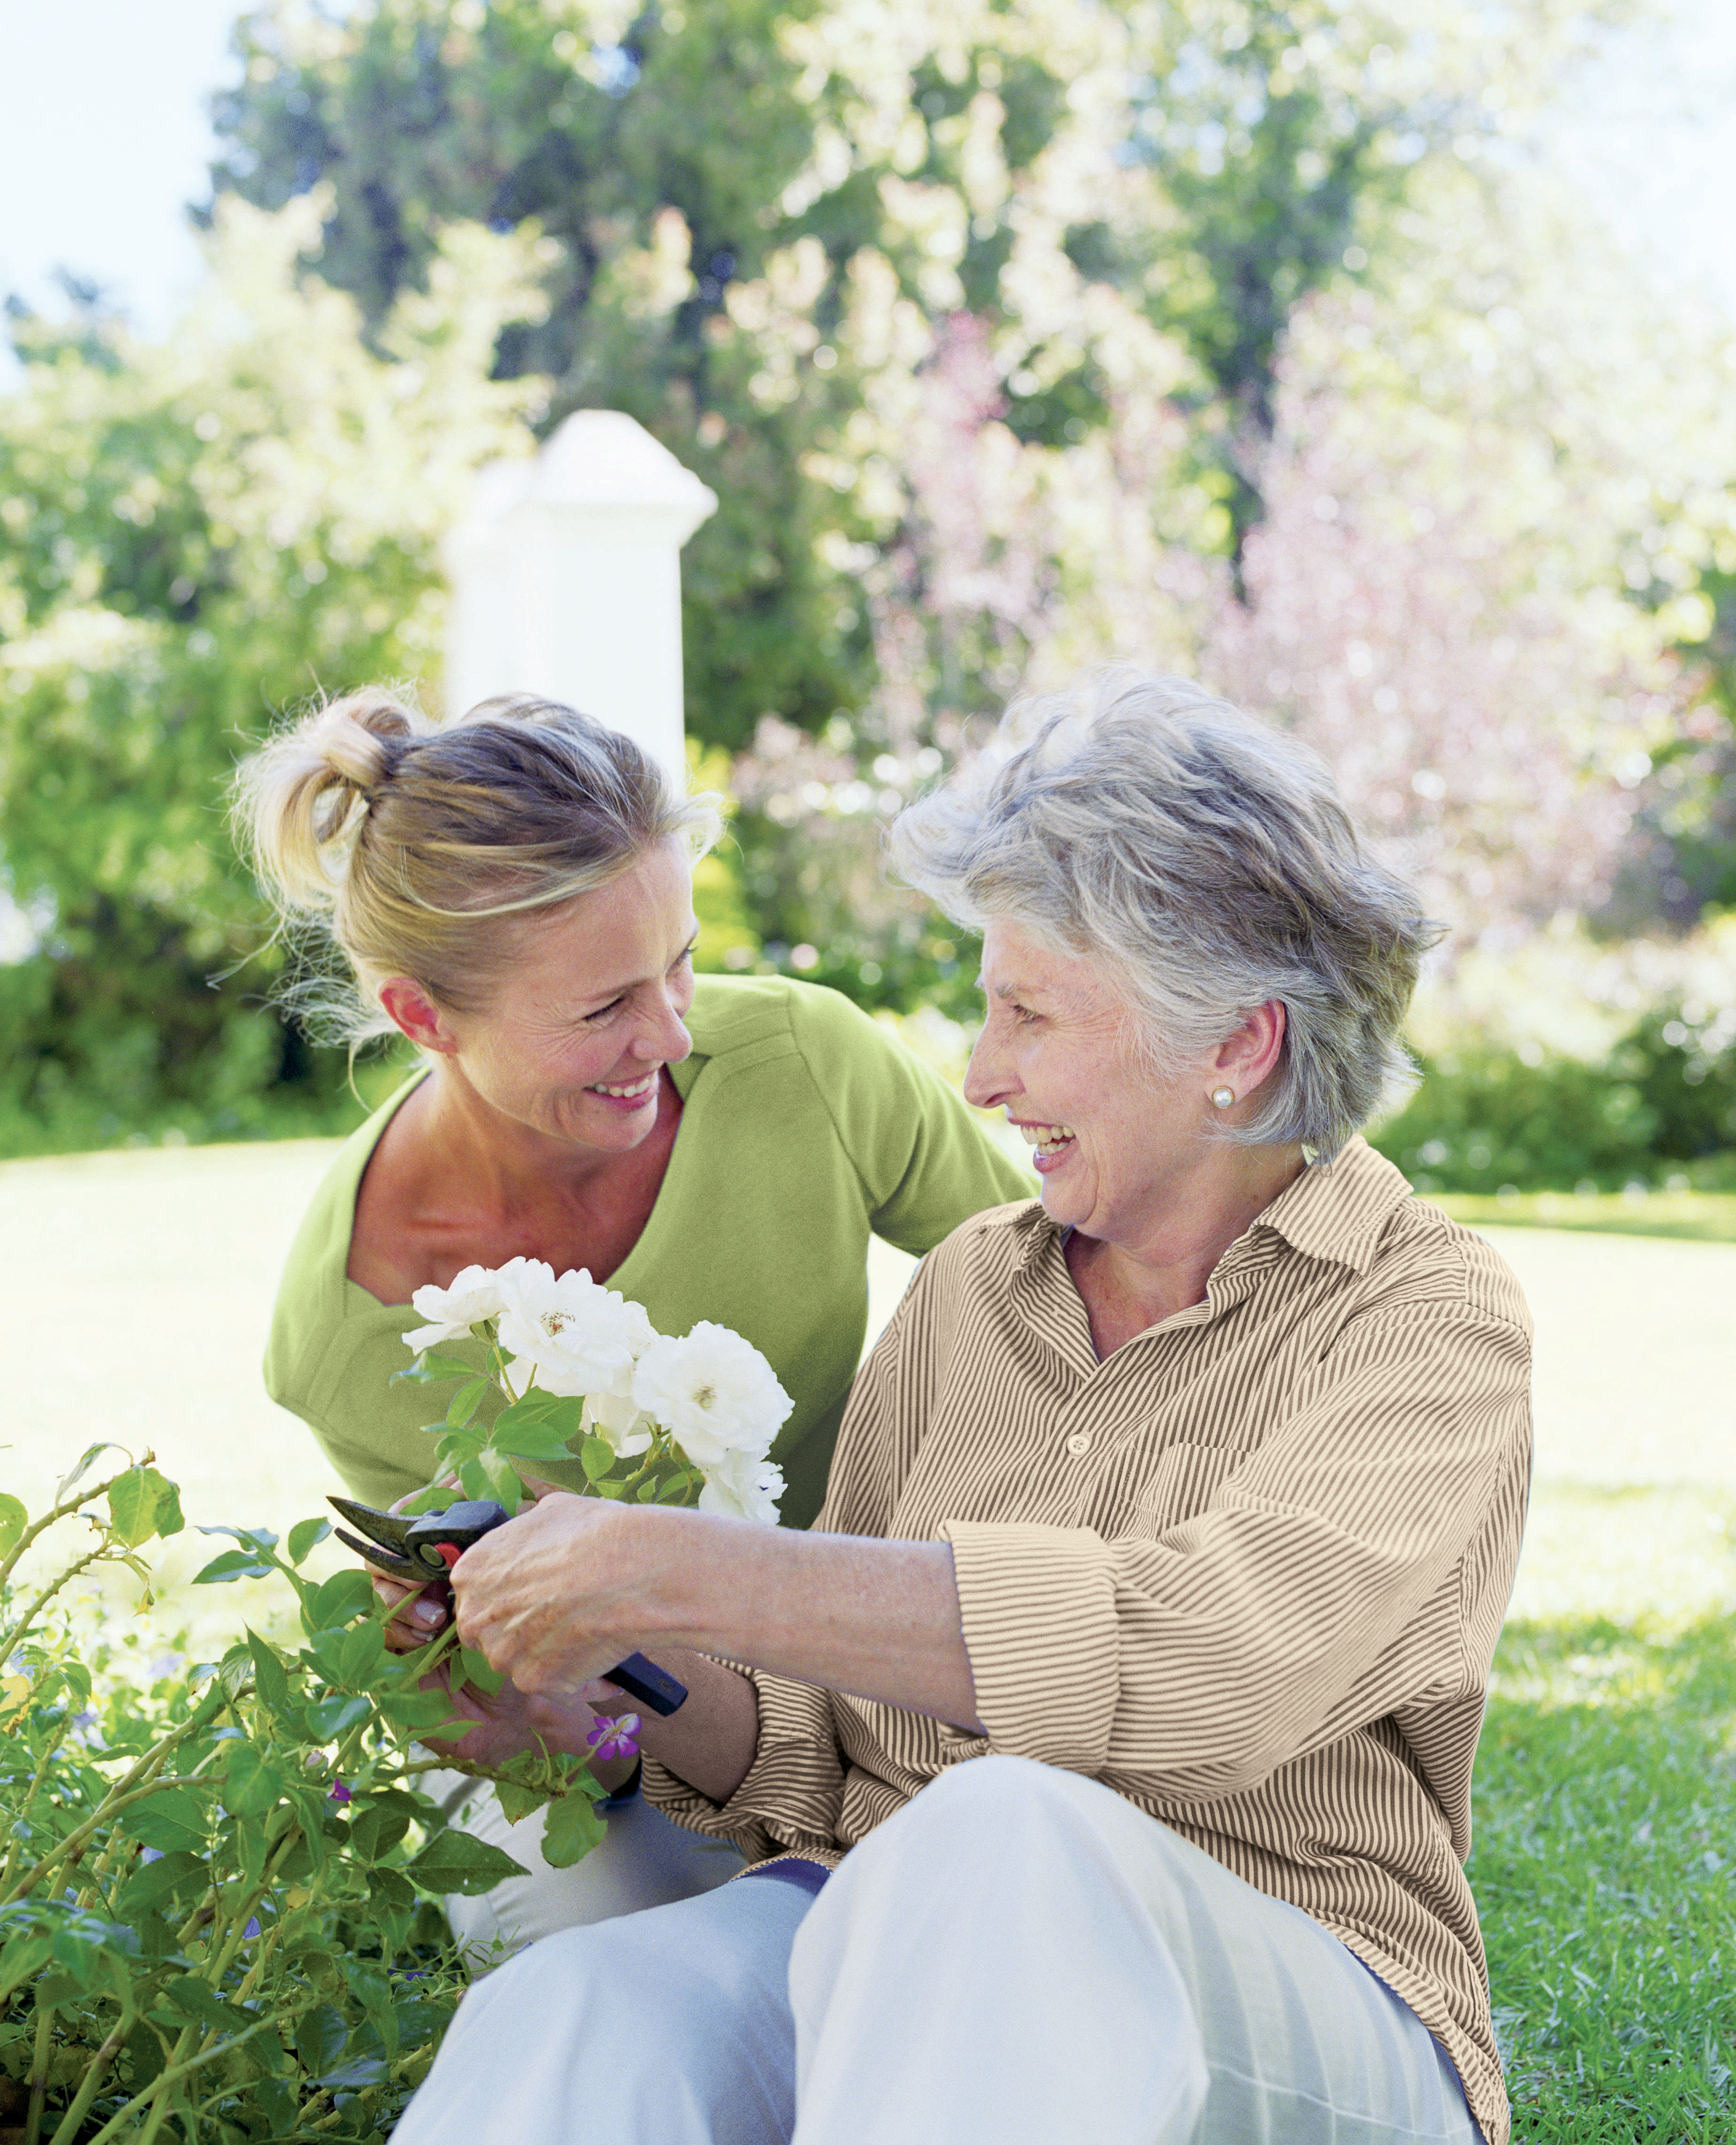 Preferred Care at Home of Cape Coral & Fort Myers